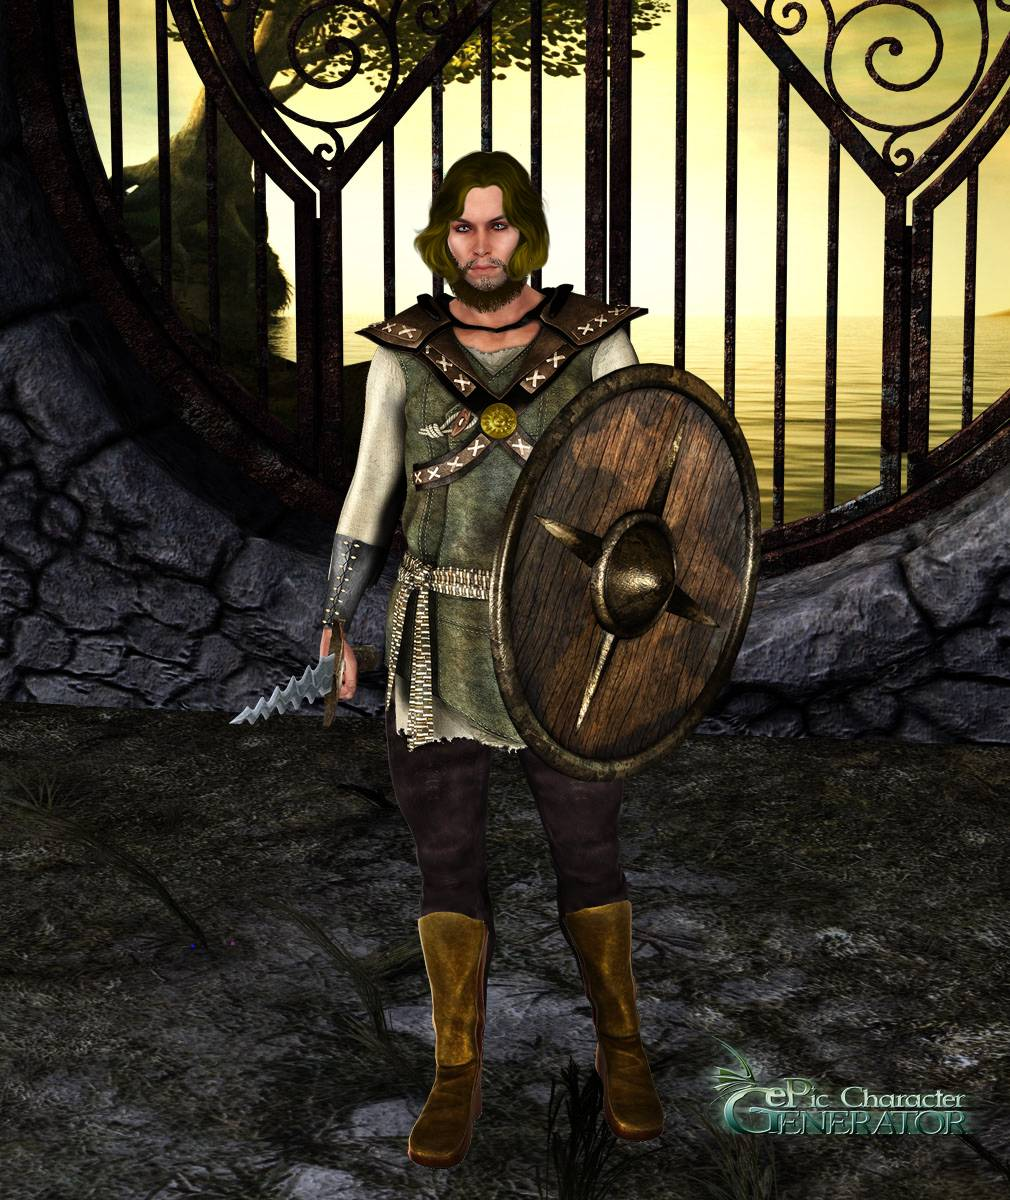 ePic Character Generator Season 2 Male Adventurer Screenshot 01